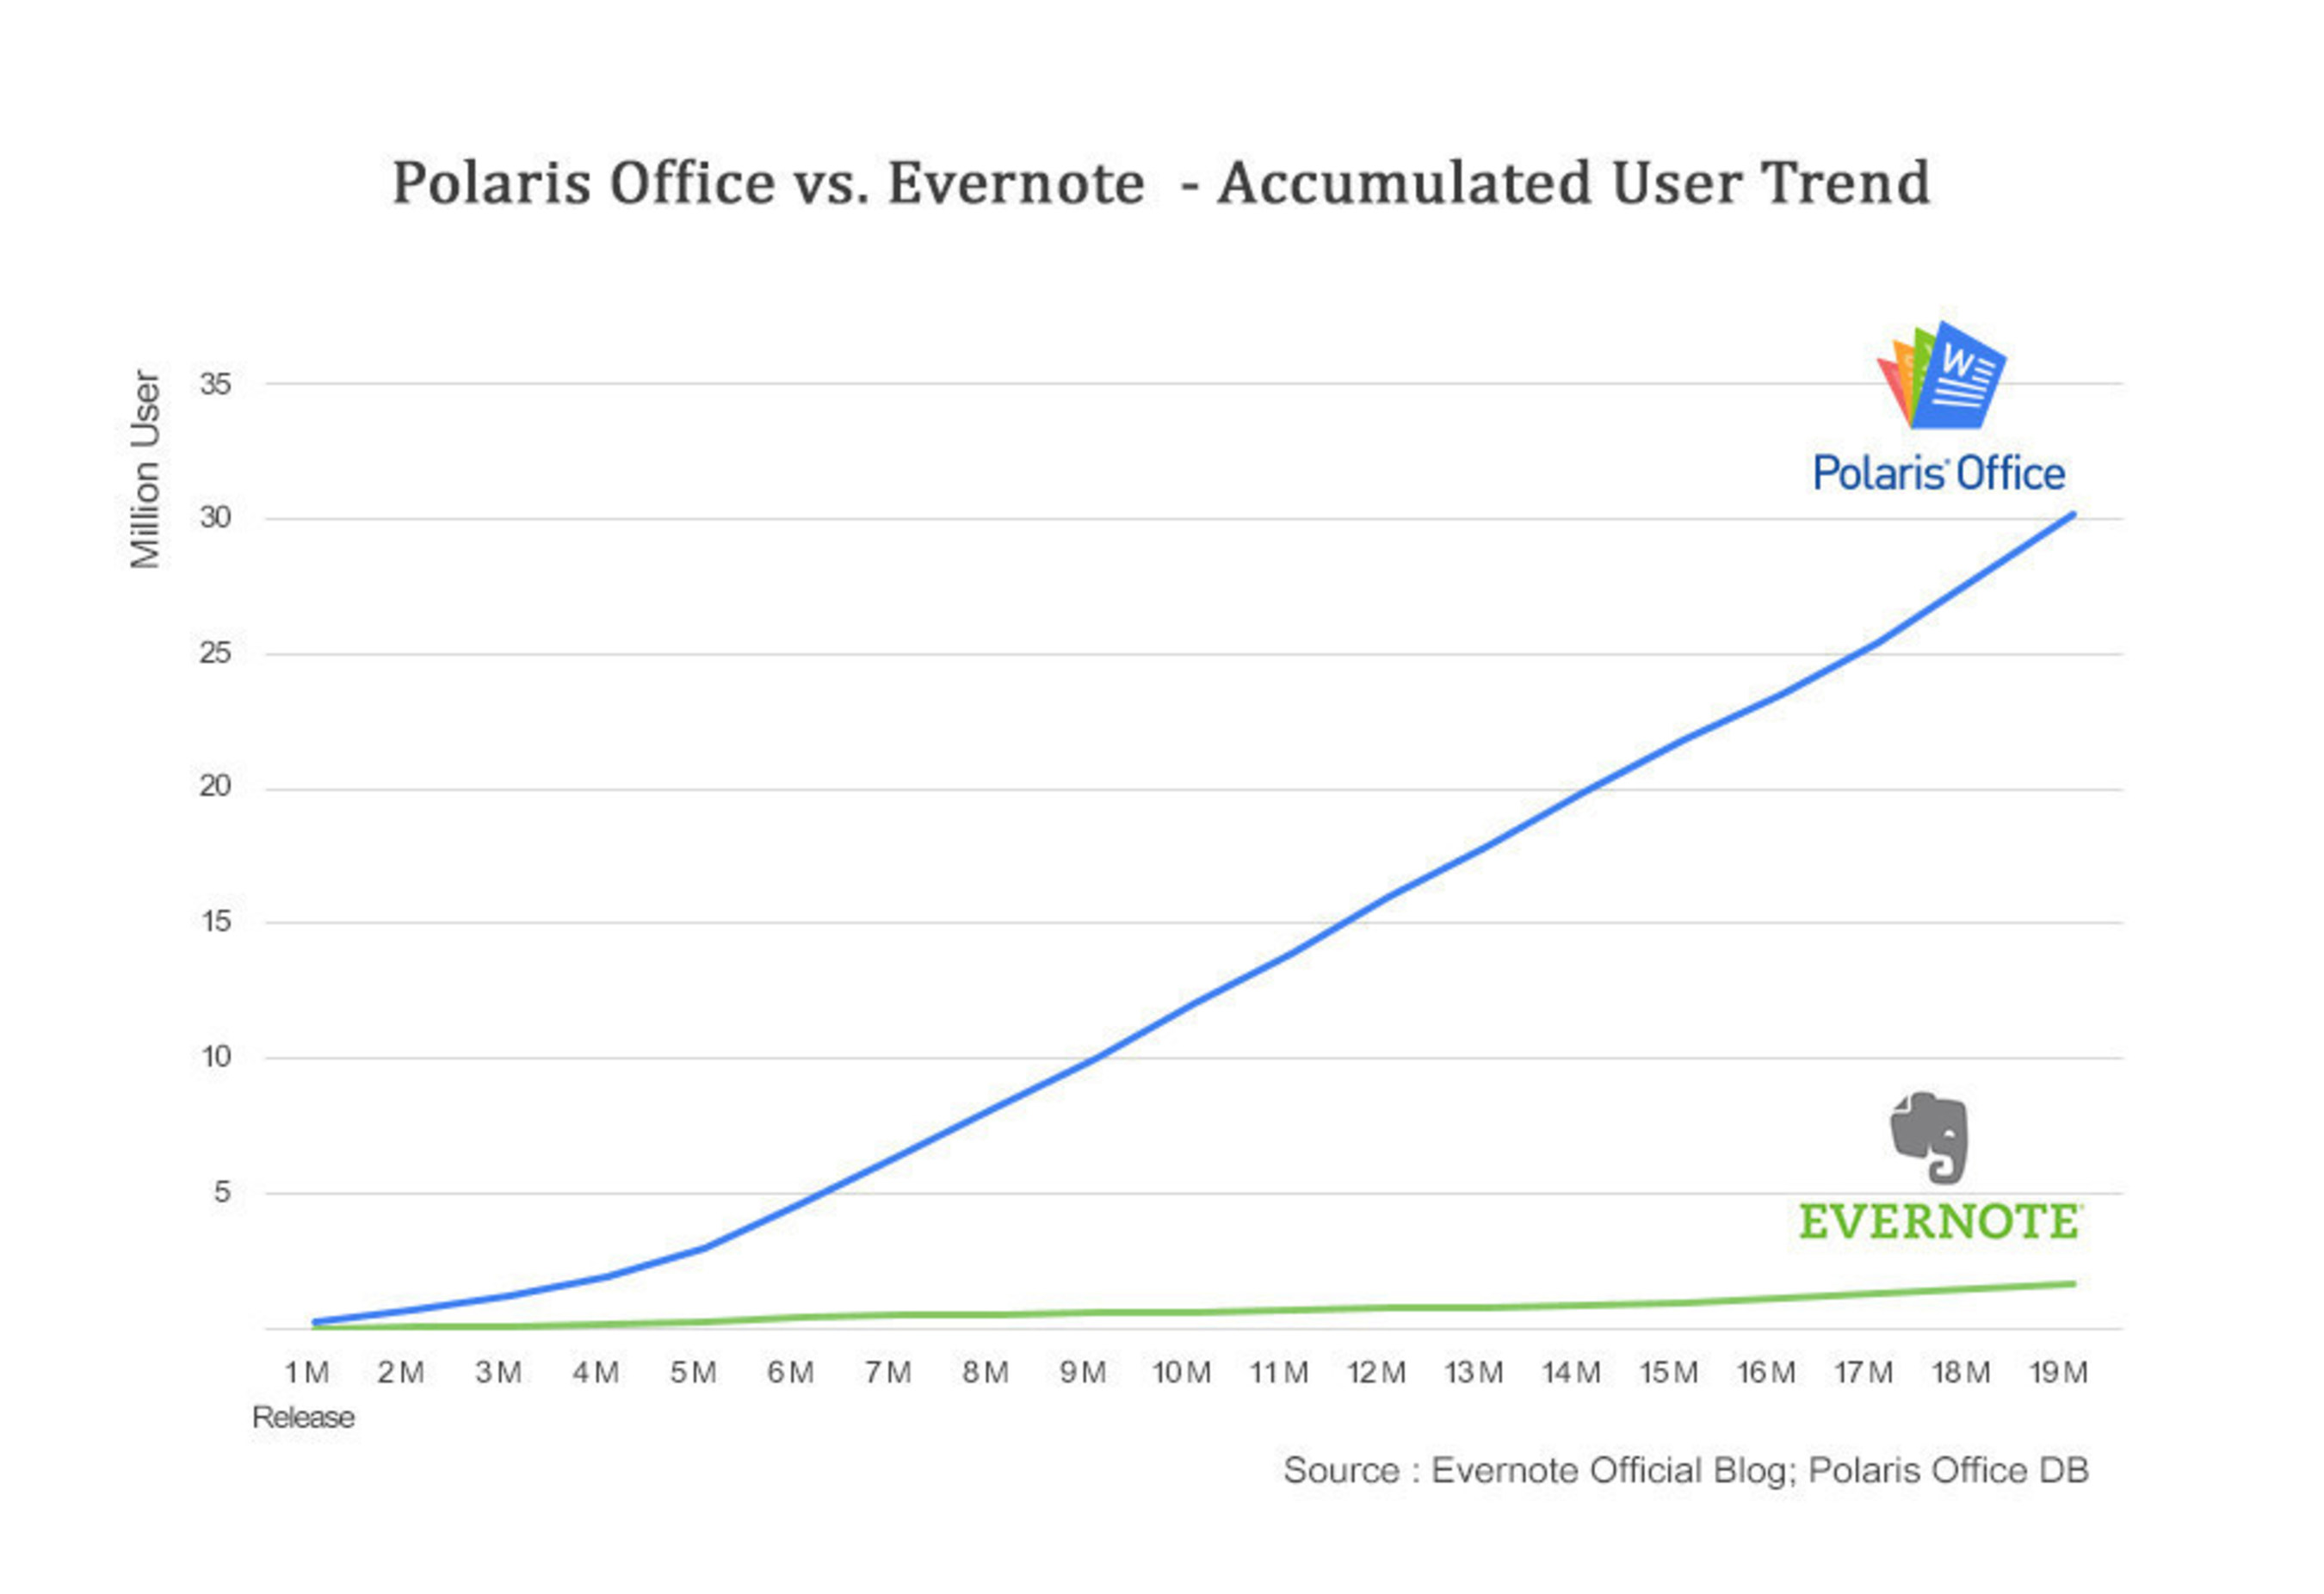 Polaris Office vs. Evernote - Accumulated User Trend